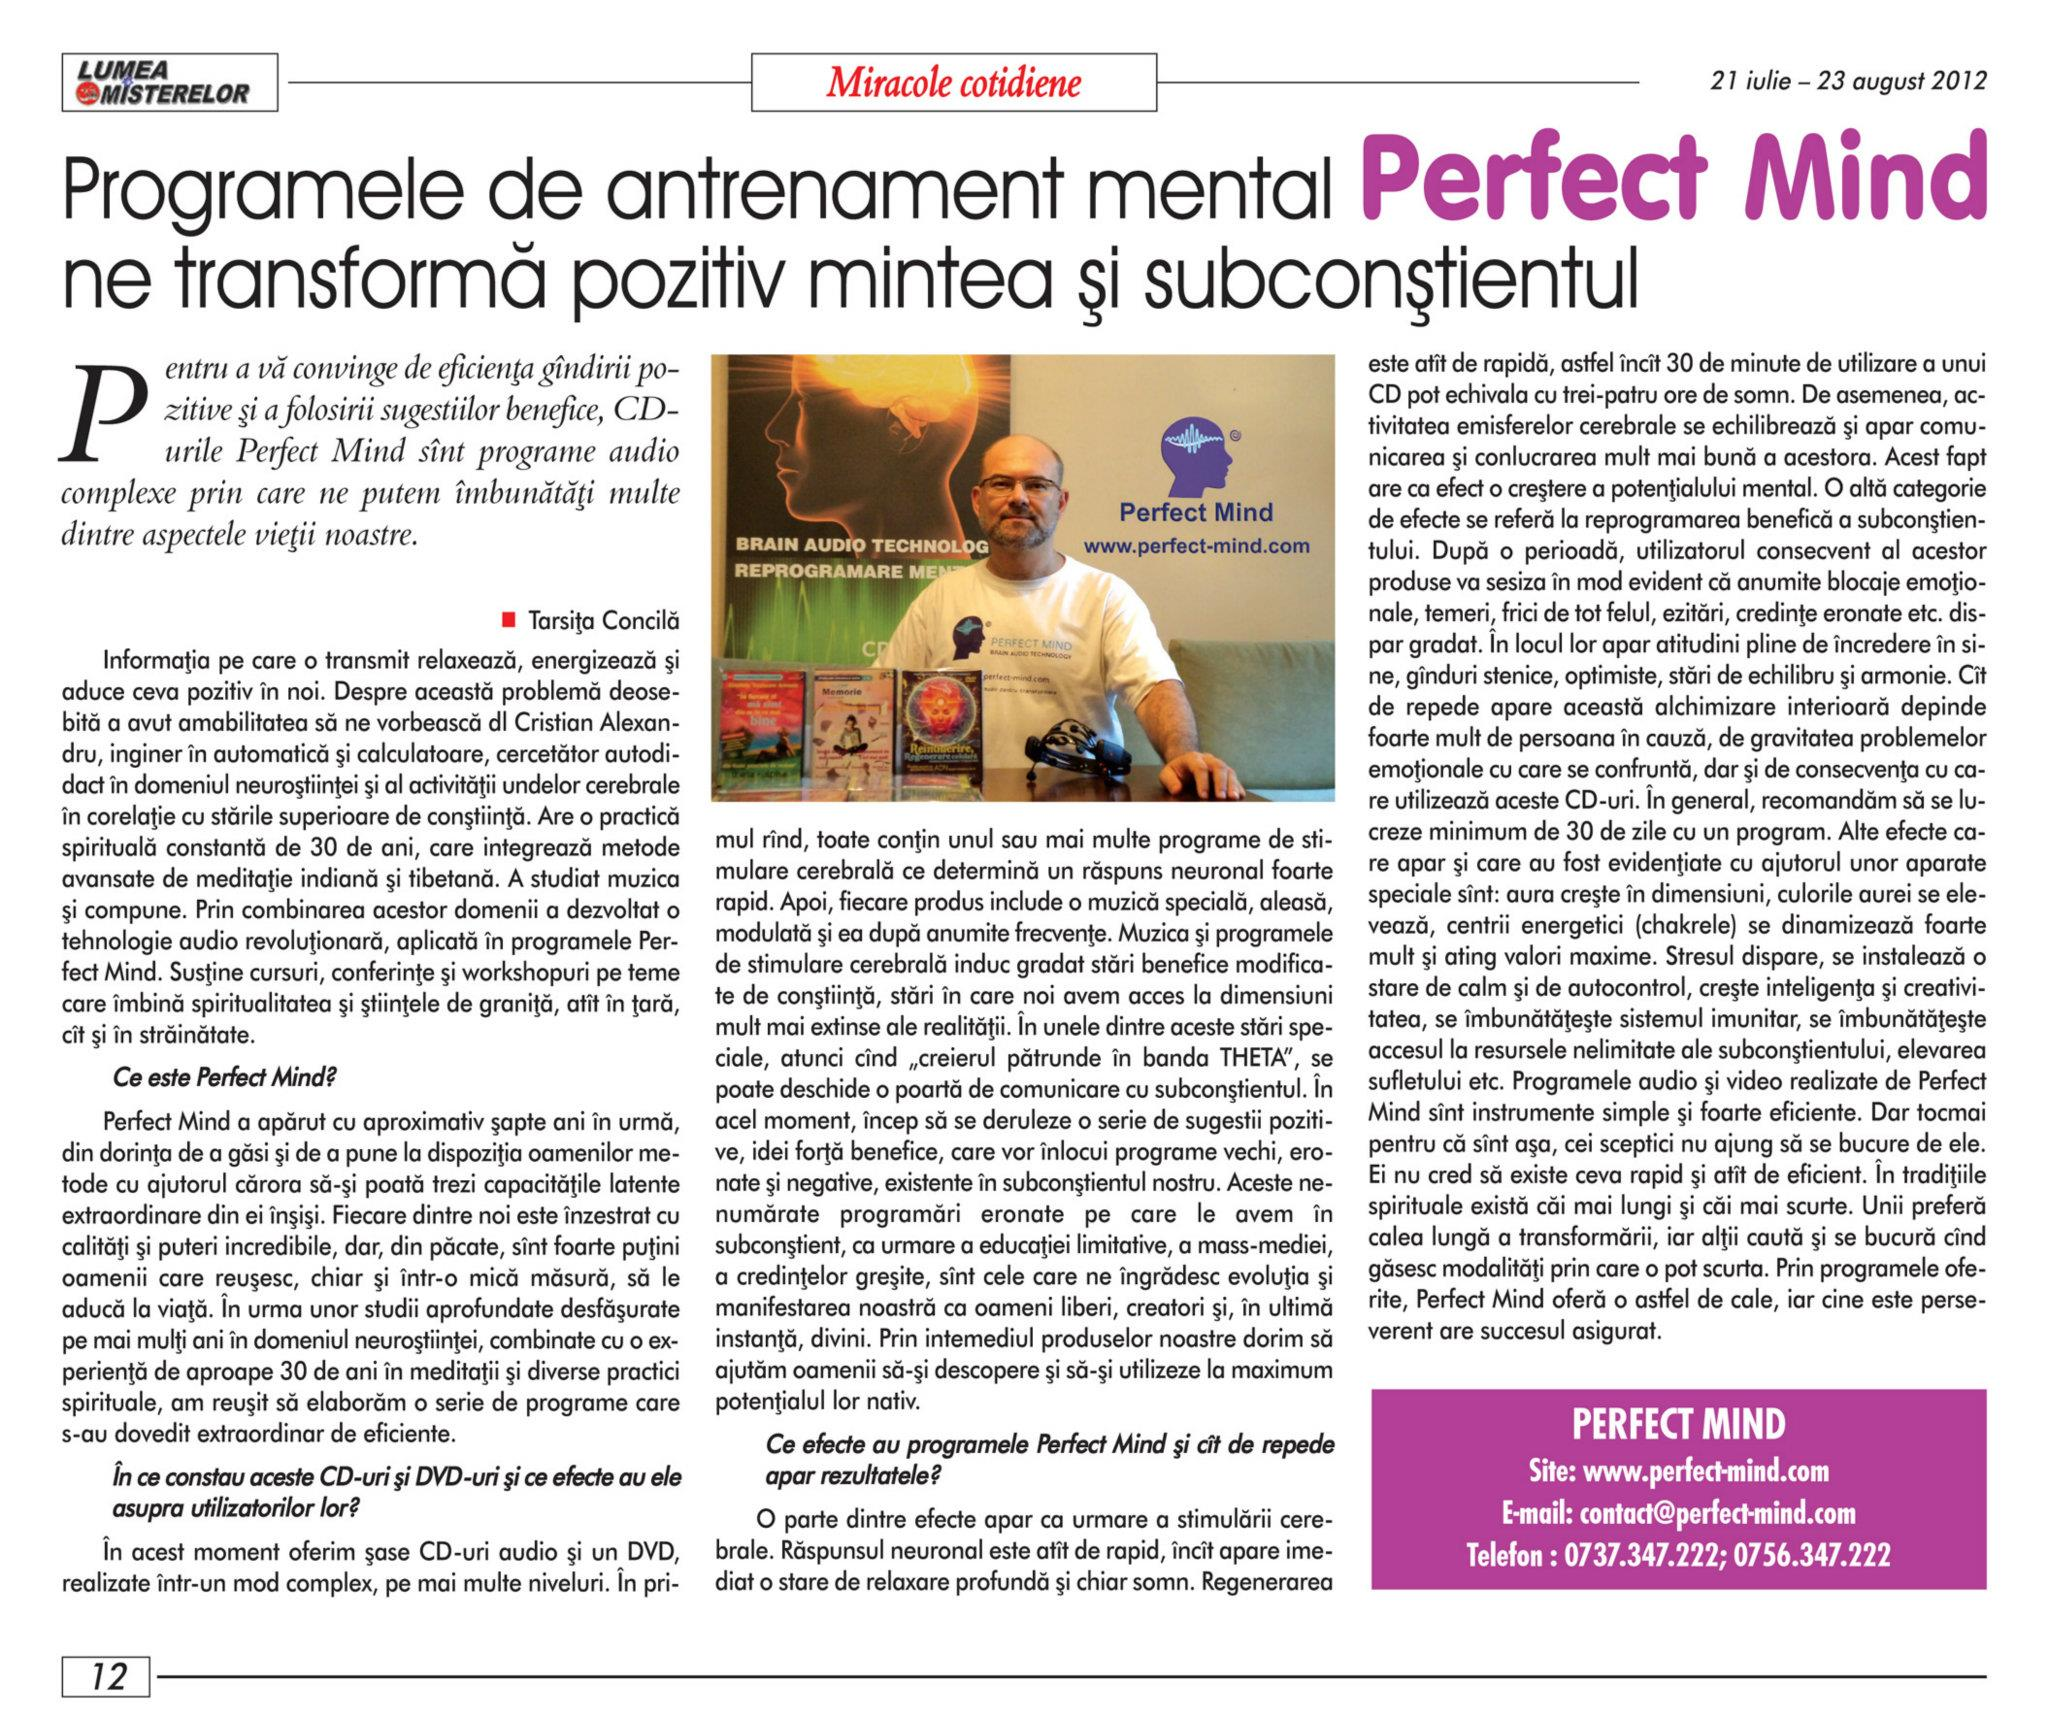 Perfect Mind in Revista Misterelor